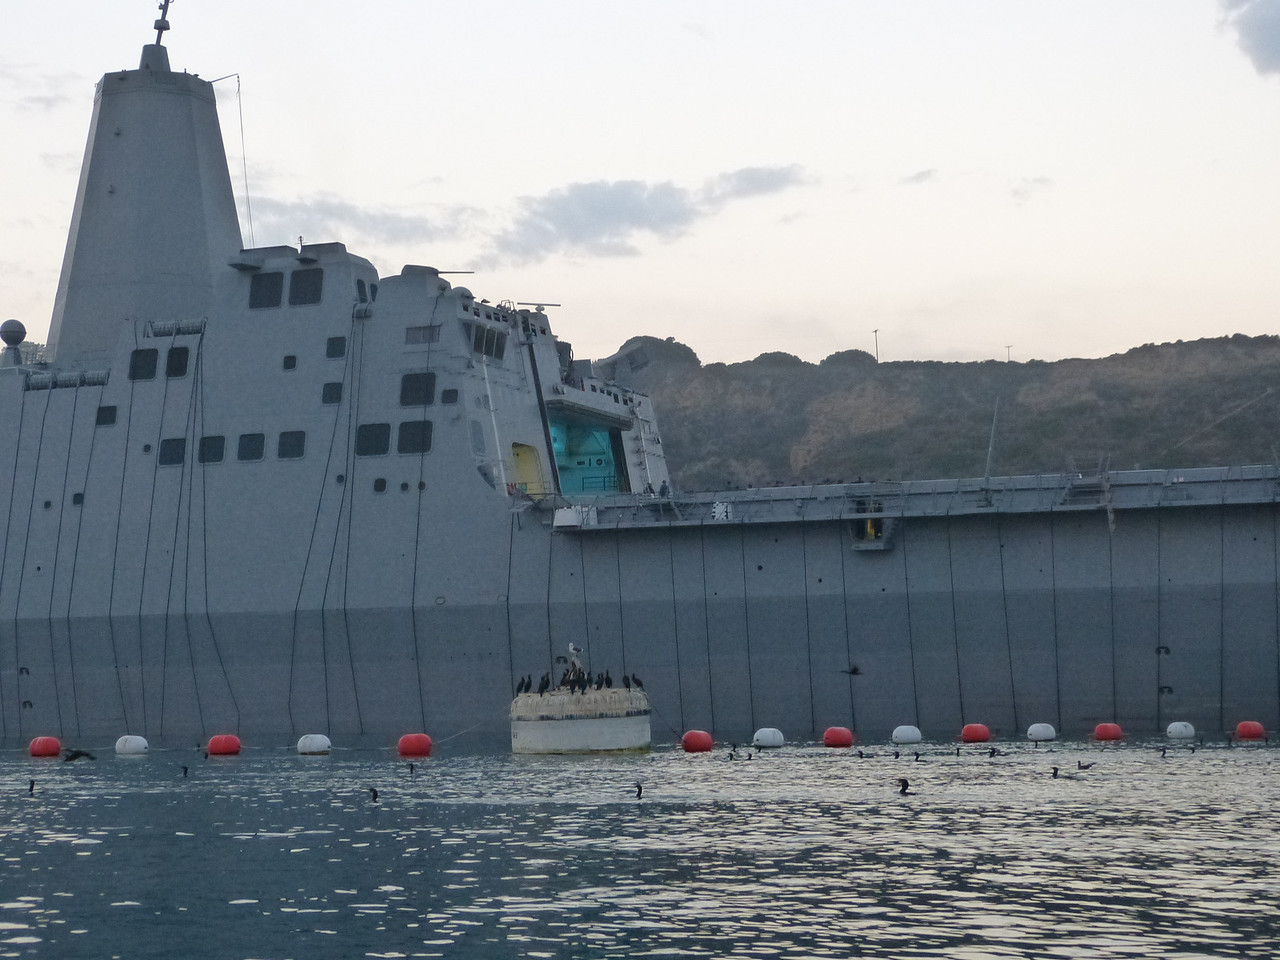 The Advanced Enclosed Mast/Sensors, which enclose the ship's radars and communications antennas, characterize the ship's distinctive profile<br /> <br /> See all those ropes down the side?  One could hardly imagine that she needs any scrubbing or paint, since she was only commissioned in May of 2012.  She became the first ship in the San Antonio class to locally fire the MK 46, 30 millimeter gun weapon systems.